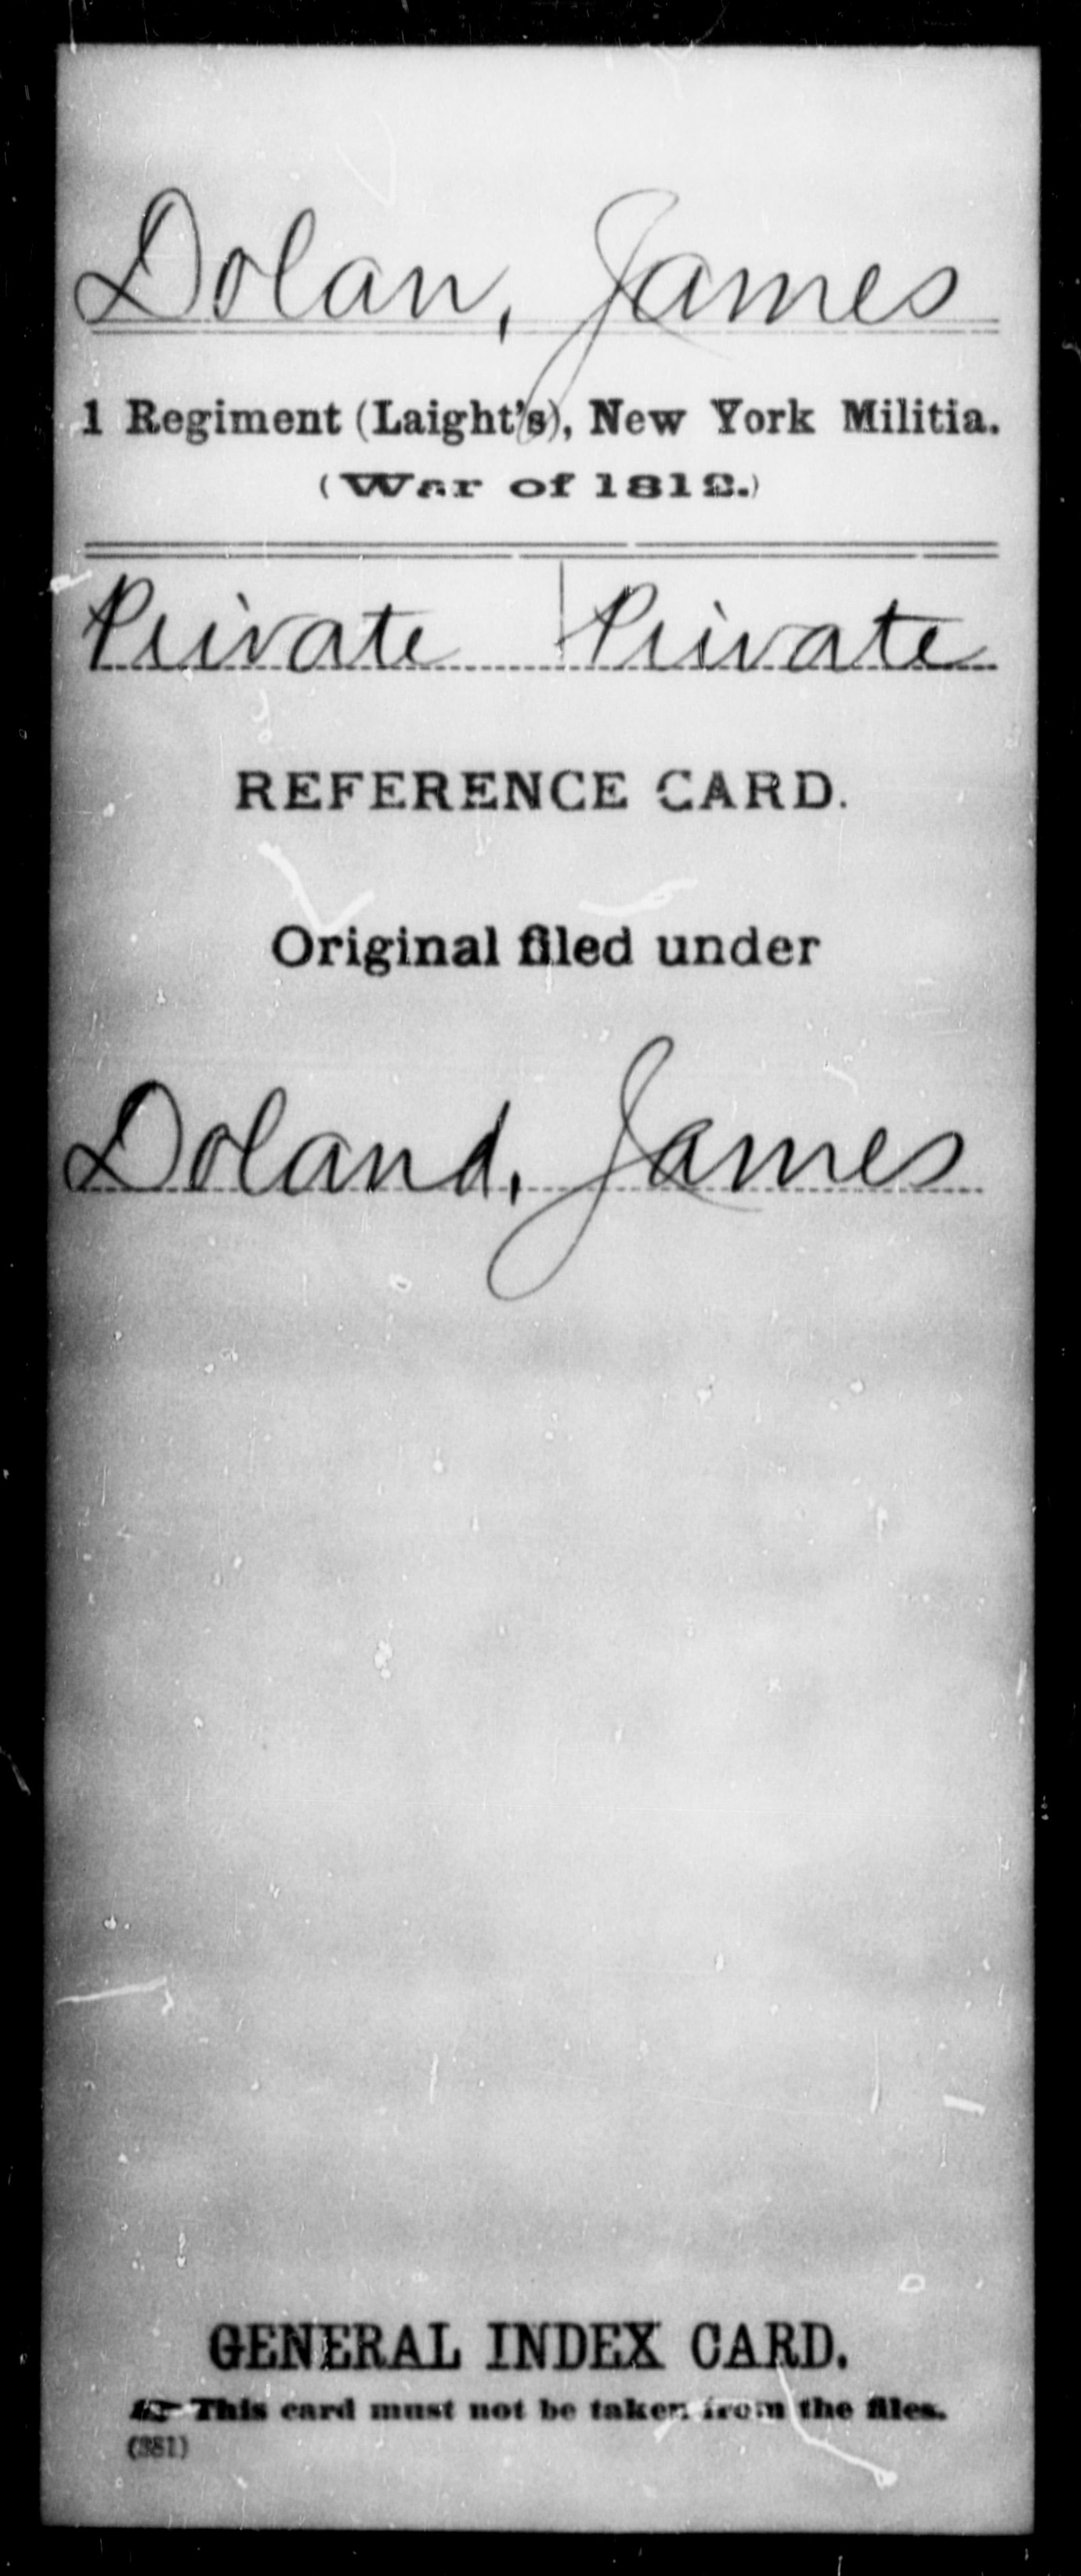 Dolan, James - State: New York - Regiment: 1 (Laight's), New York Militia